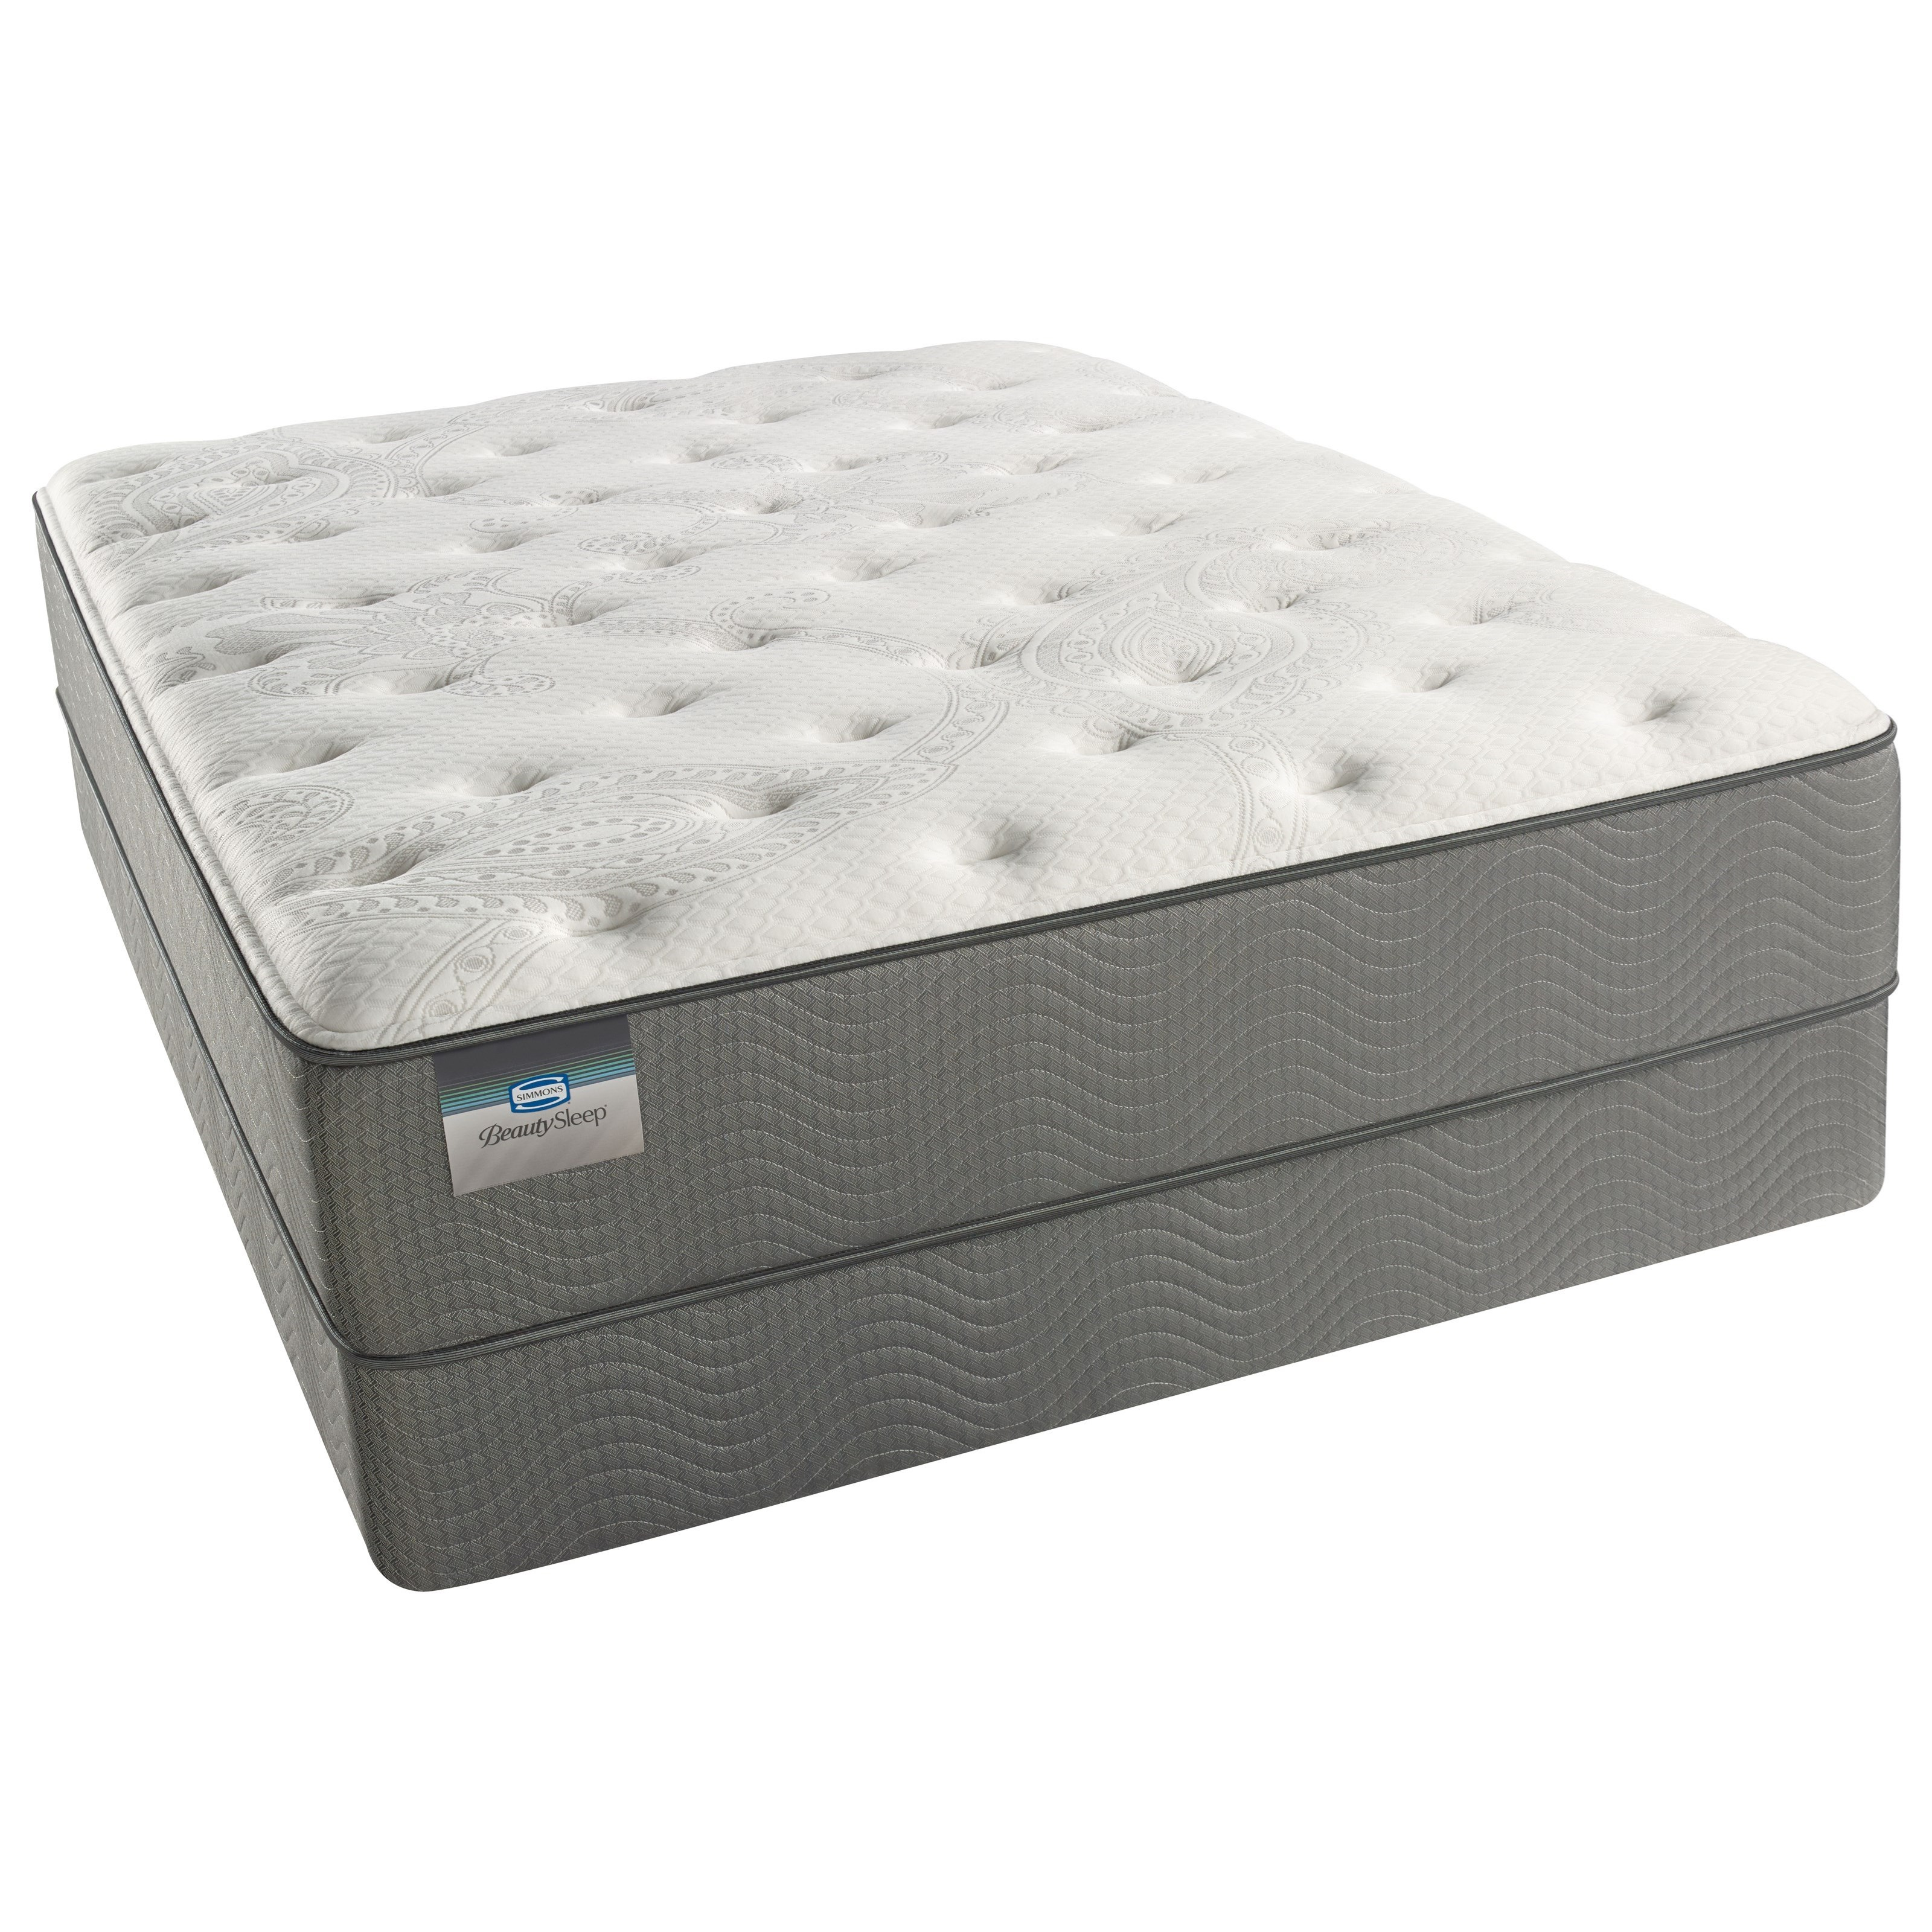 Beautyrest Beautysleep White Pass Luxury Firm  Queen Set - Item Number: 700600210-1050+700600212-5050